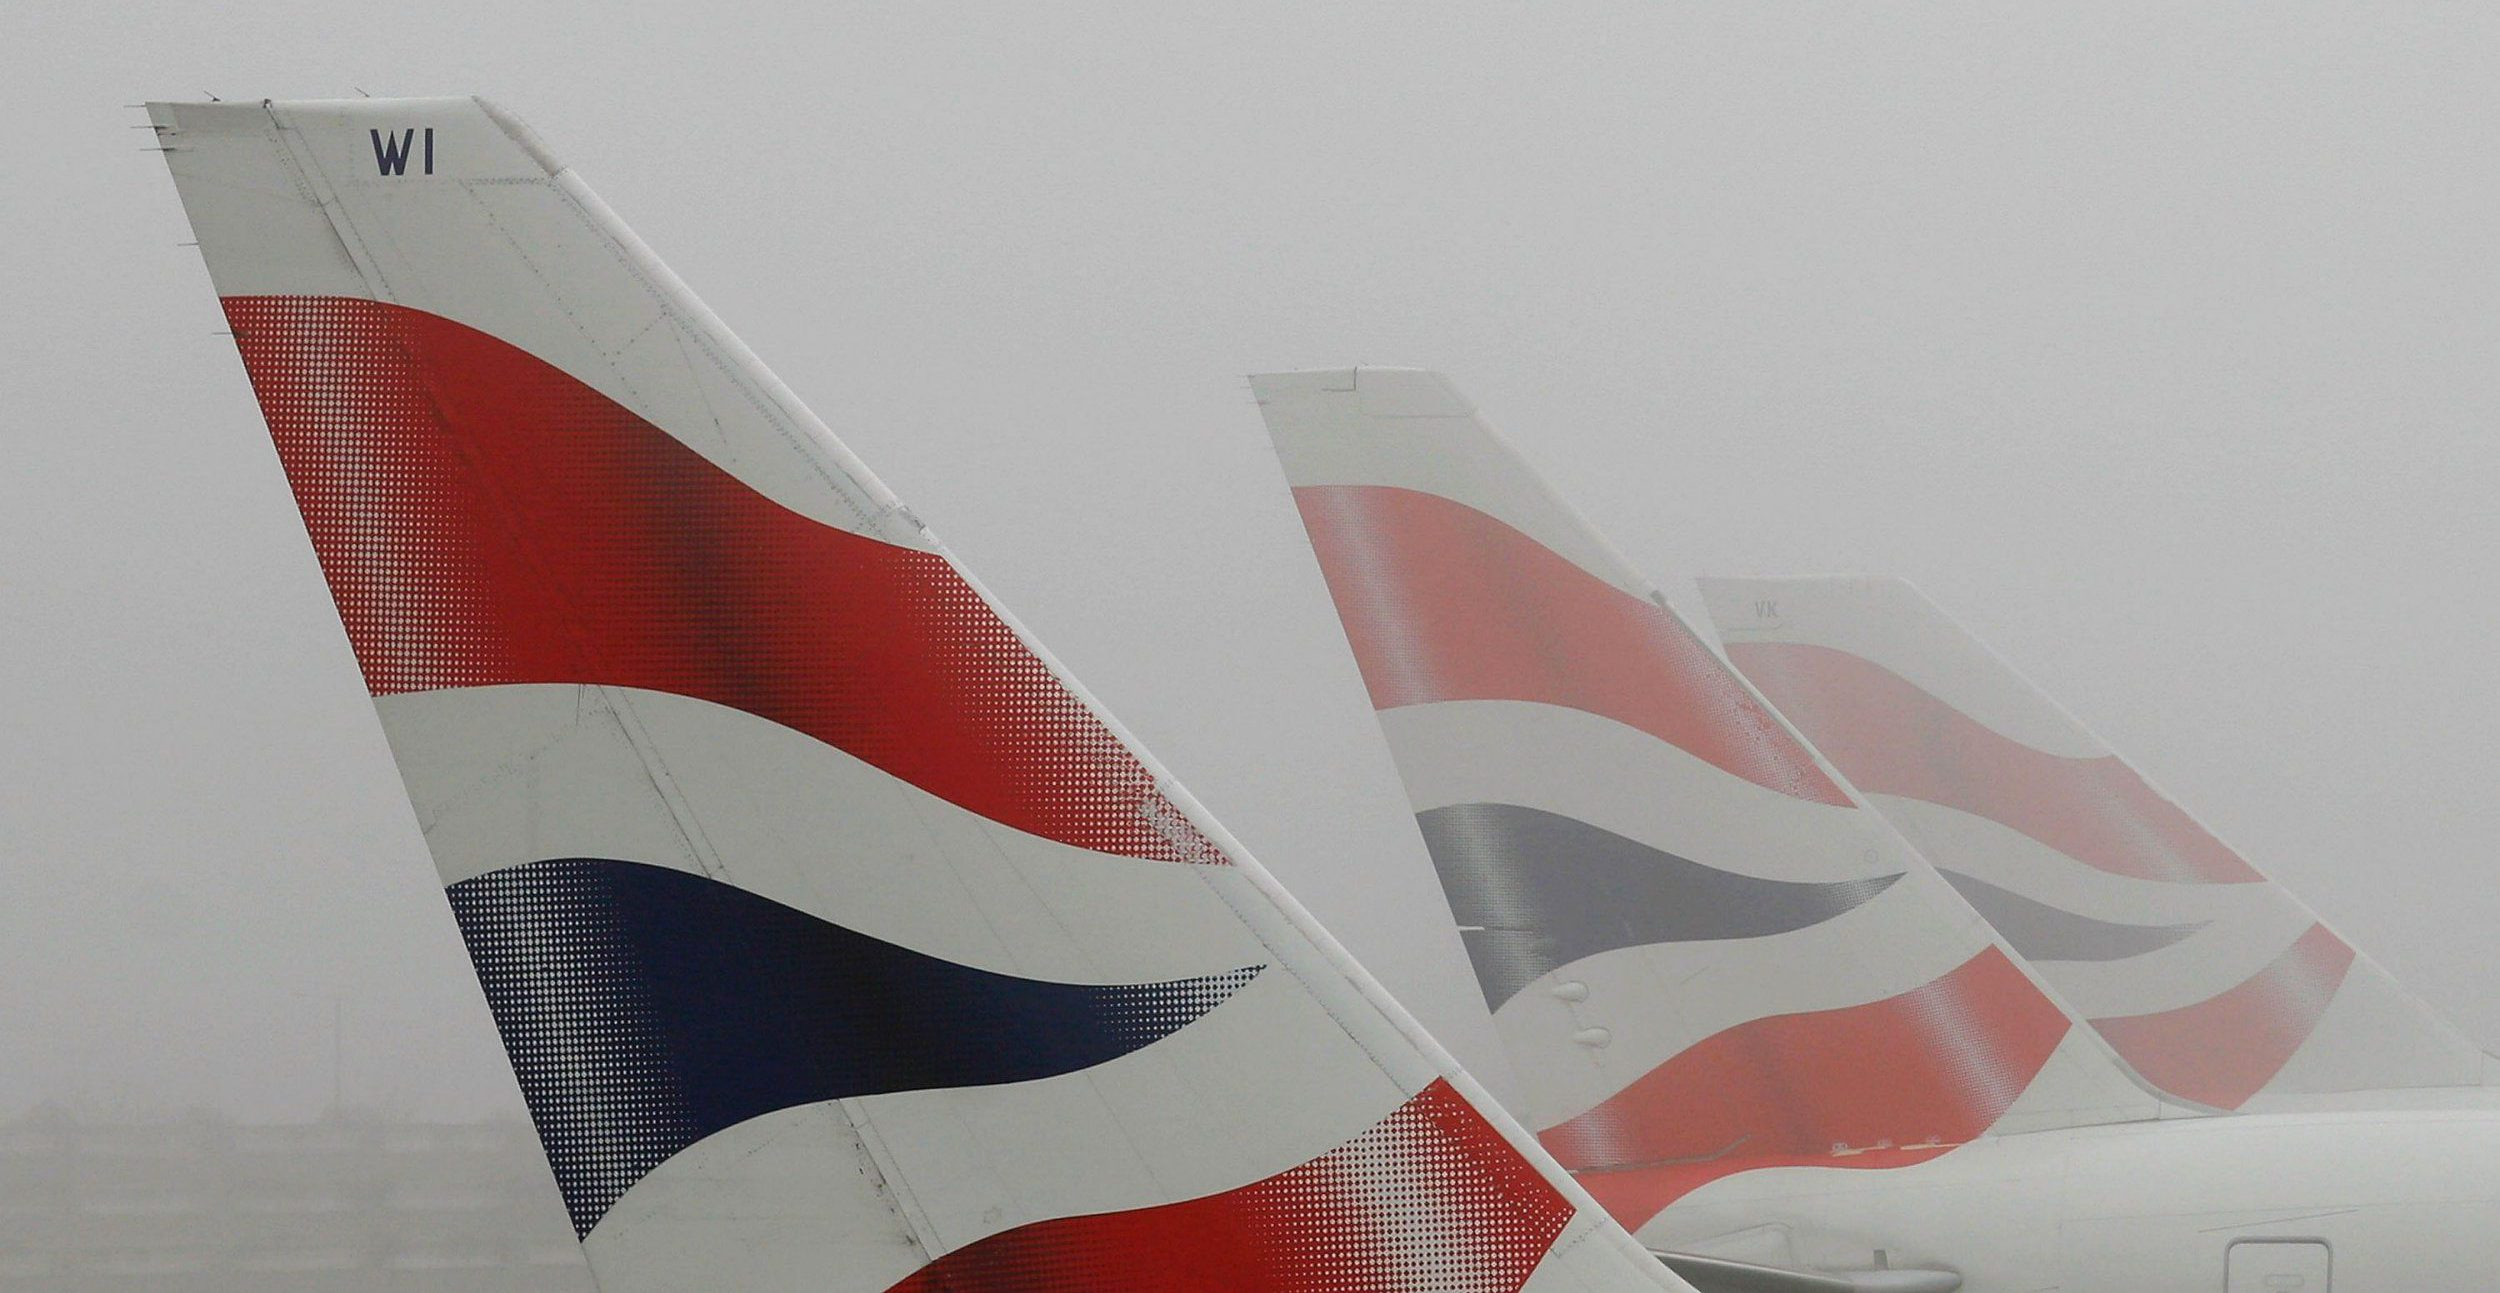 Flights cancelled as thick fog leaves thousands of passengers stranded